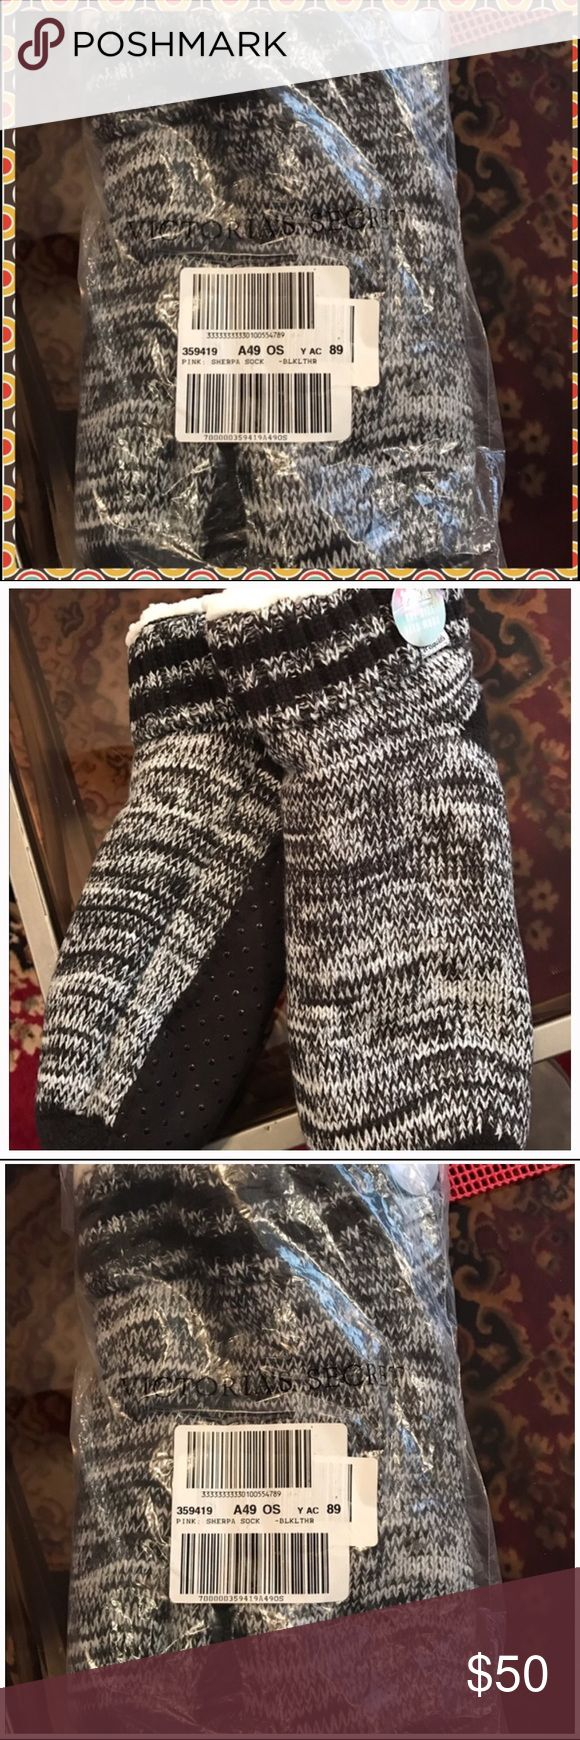 BNWT Pink Victoria'sSecret Black Mark Sherpa Socks BNWT PINK Victoria's Secret black marl Sherpa socks.  Super thick and soft and warm.  Very hard to find.  ALL SOLD OUT!!! No trades. PINK Victoria's Secret Accessories